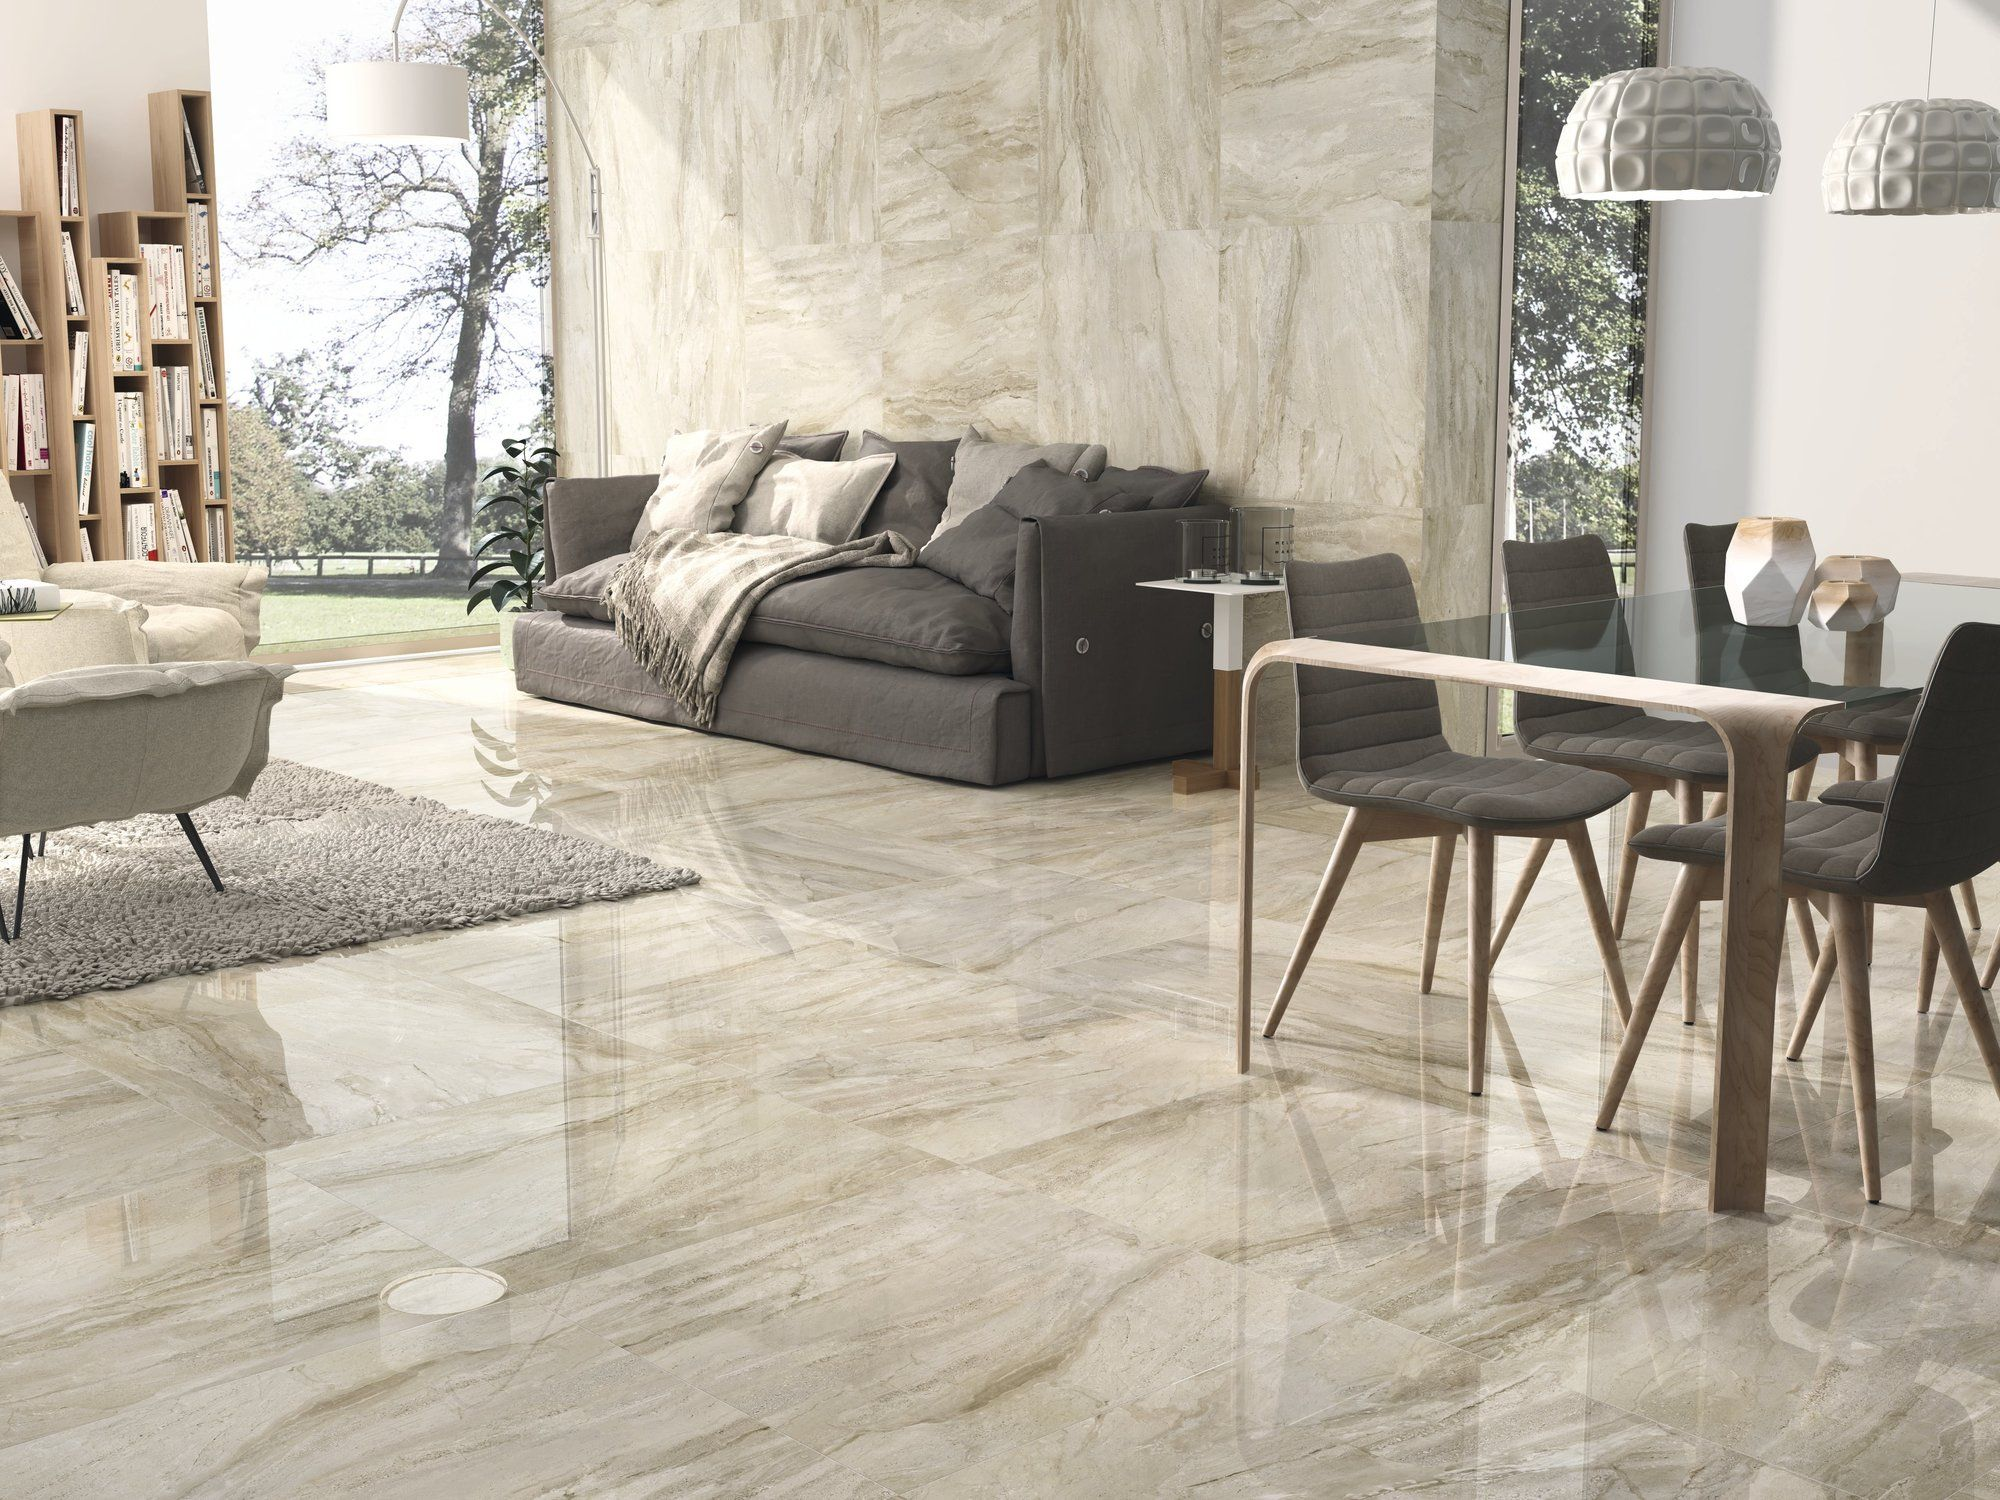 Gio 75x75cm From Ape Is A Stone Tile That Shows Well Defined  # Muebles Vibbo Malaga